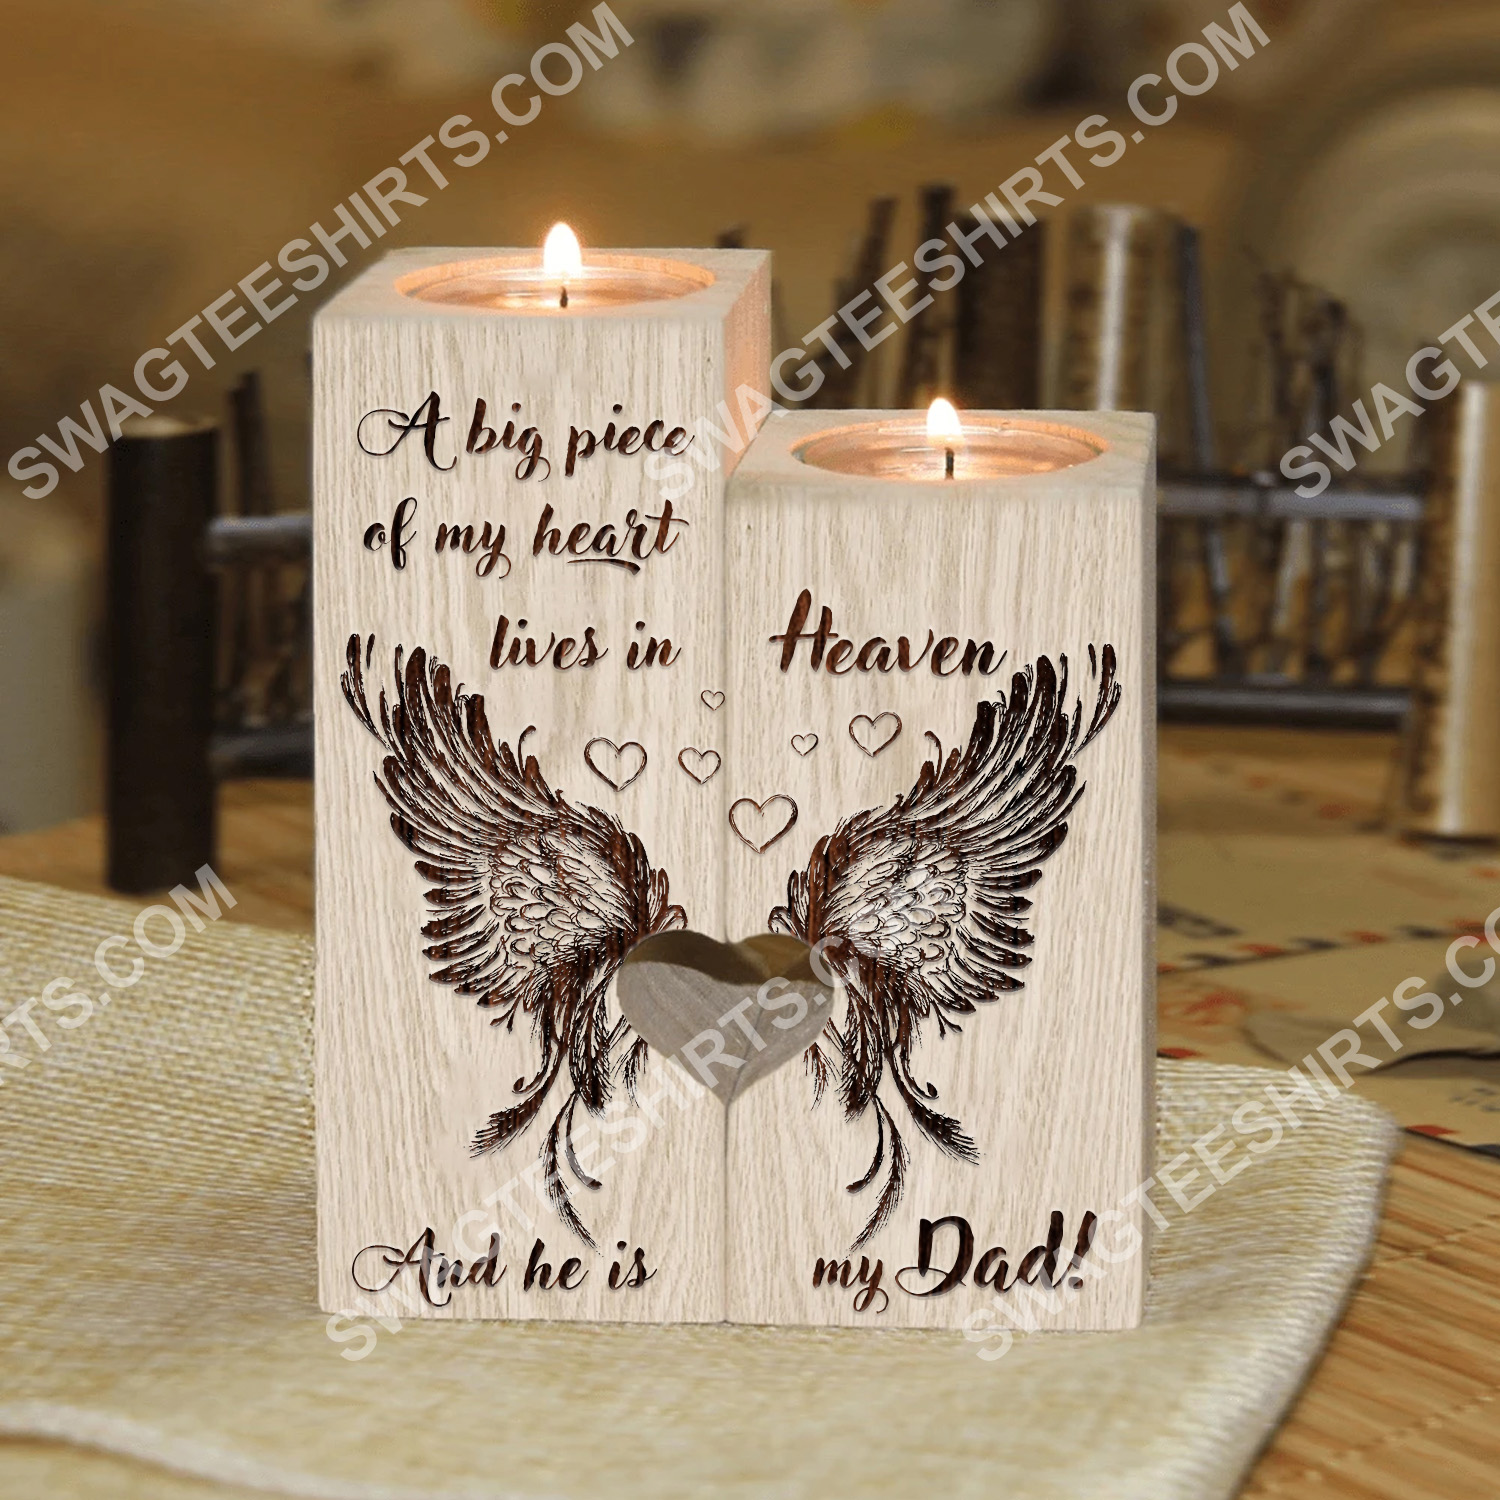 a big piece of my heart lives in heaven and he is my dad candle holder 3 - Copy - Copy